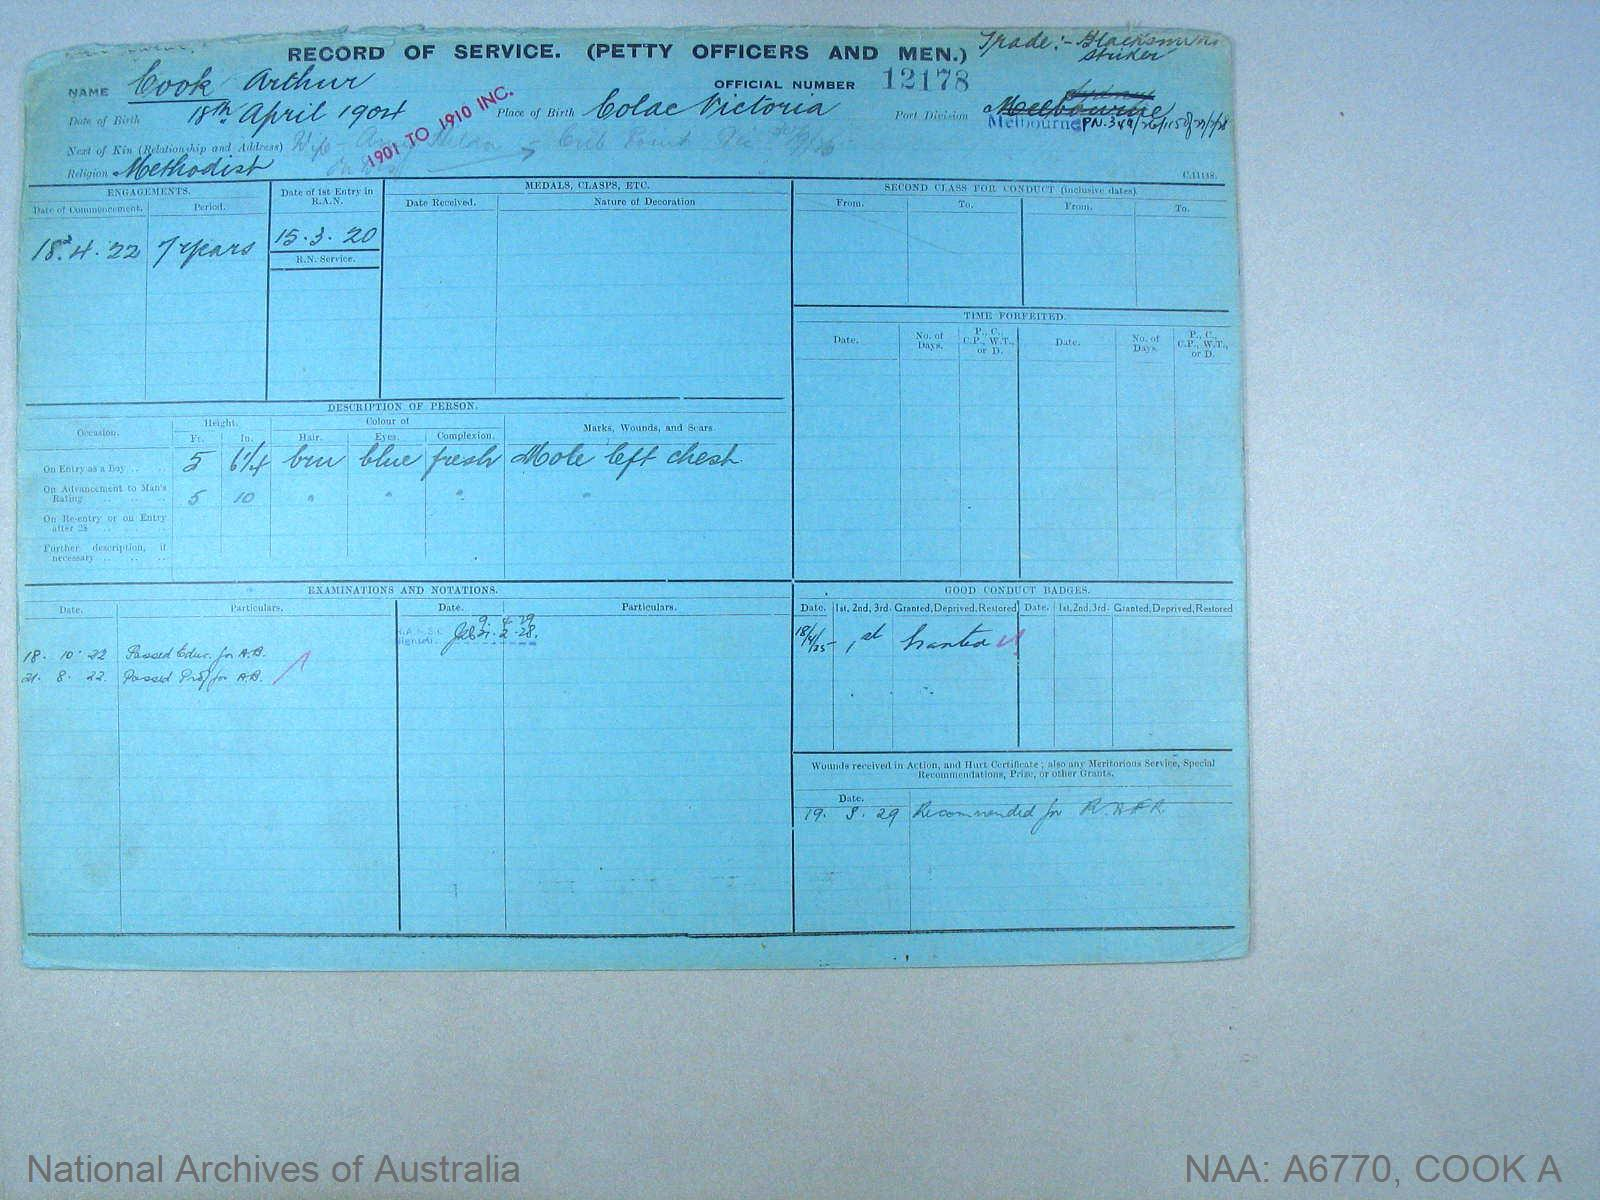 COOK ARTHUR : Service Number - 12178 : Date of birth - 18 Apr 1904 : Place of birth - COLAC VIC : Place of enlistment - MELBOURNE : Next of Kin - COOK AMY